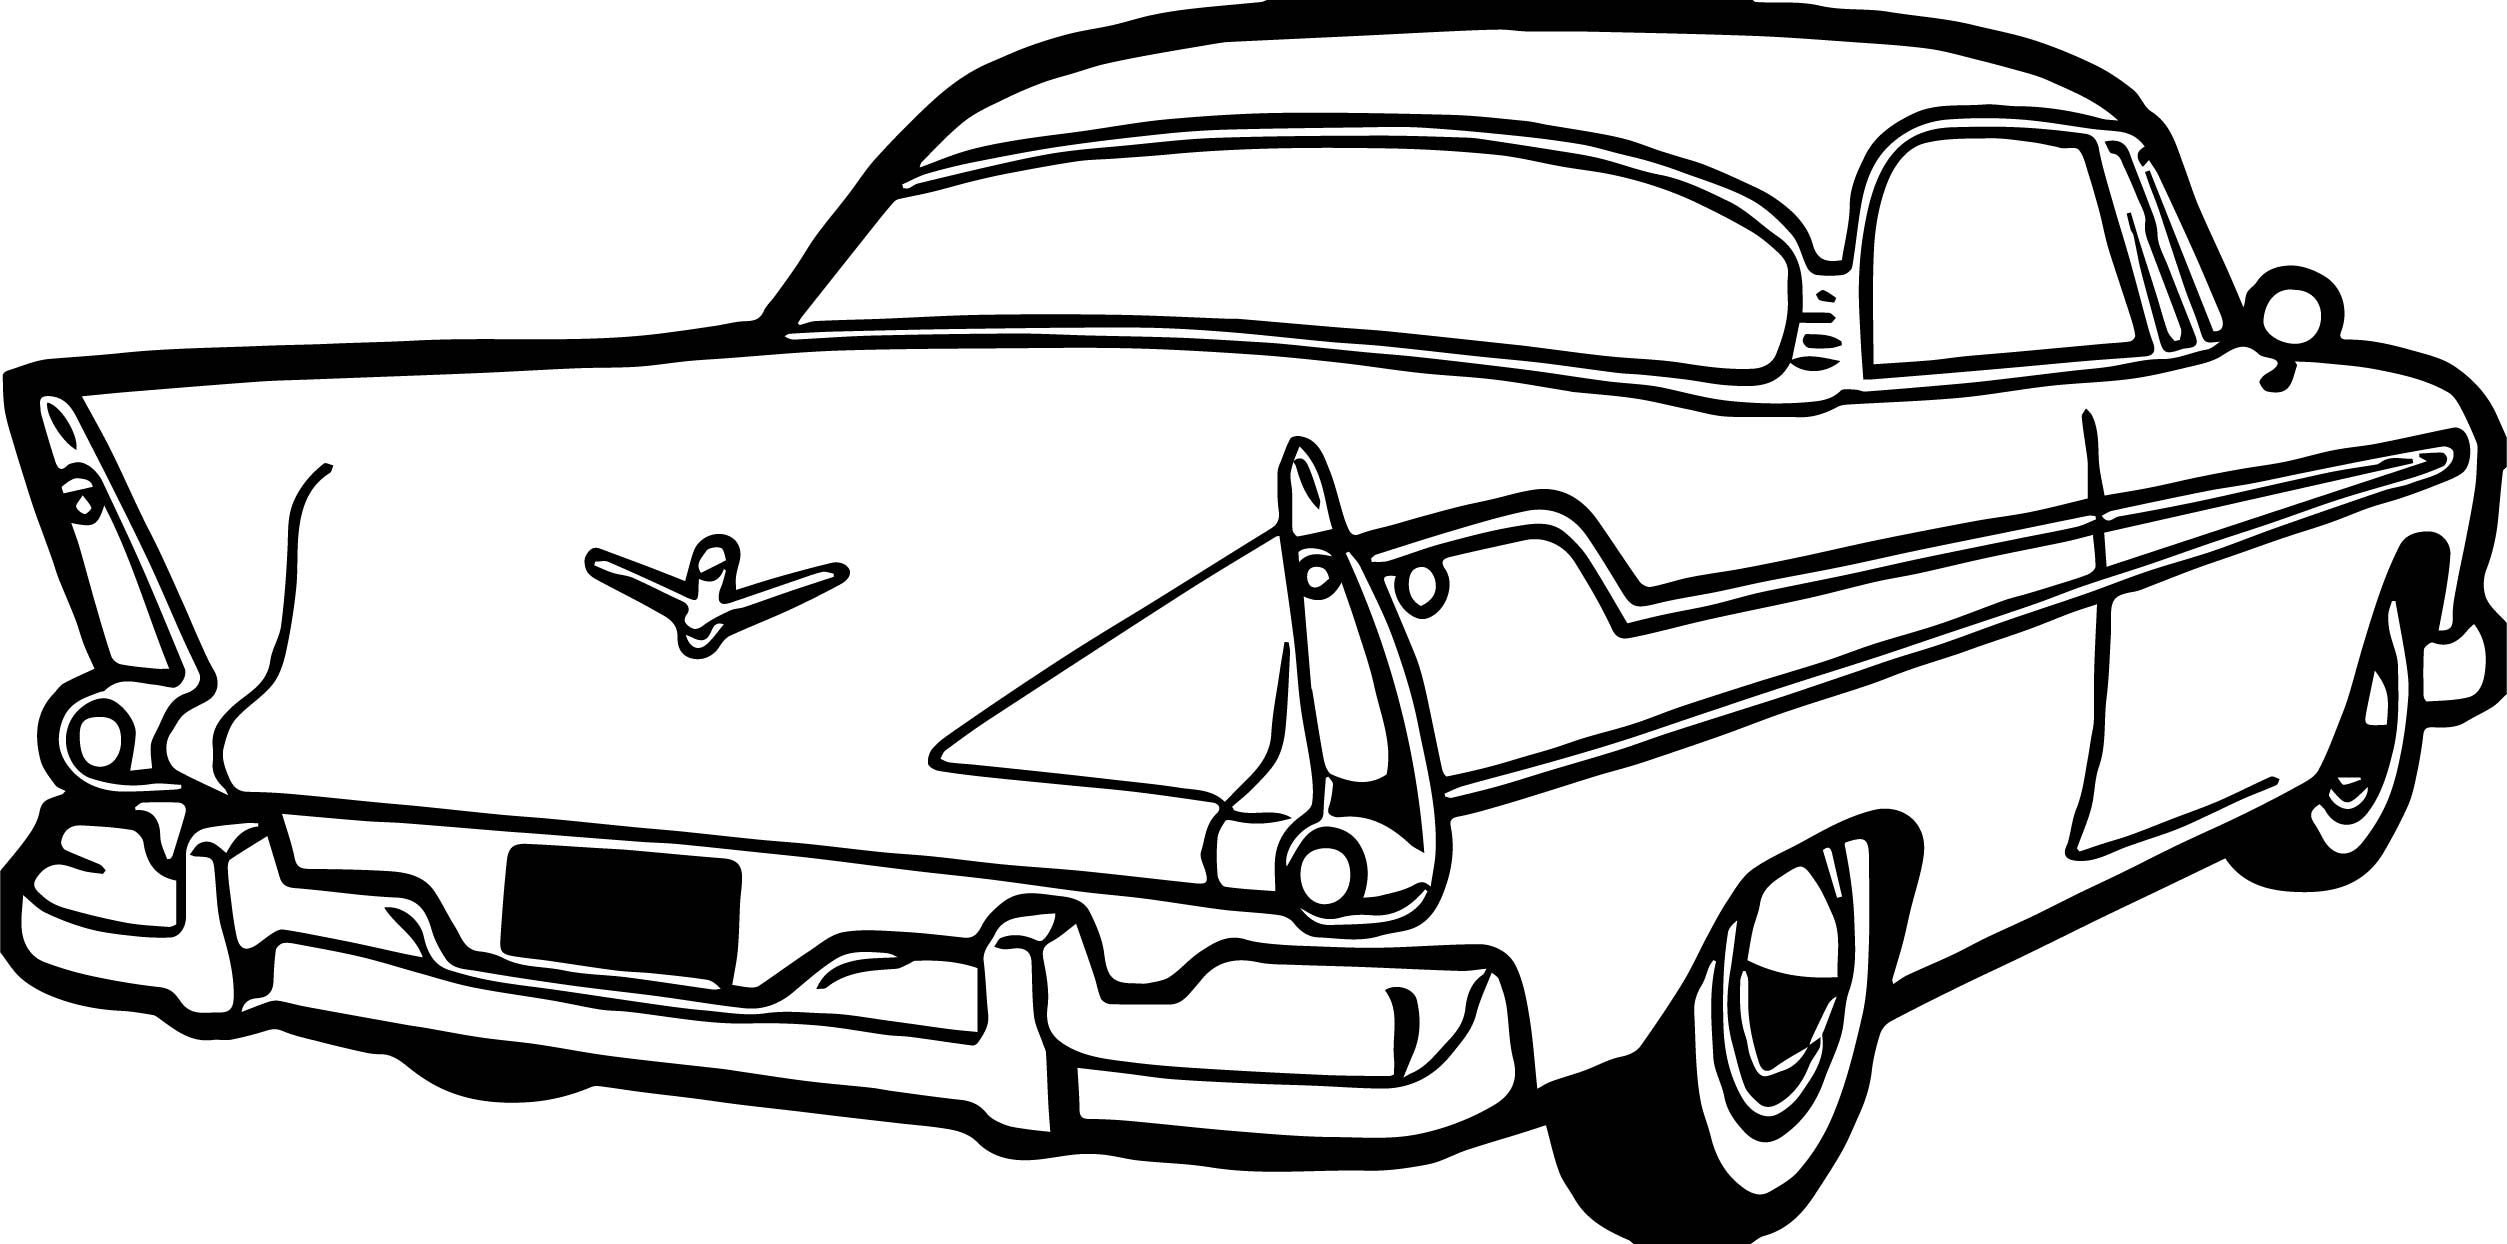 Antique Car Coloring Pages : Classic cars coloring pages for kids antique car